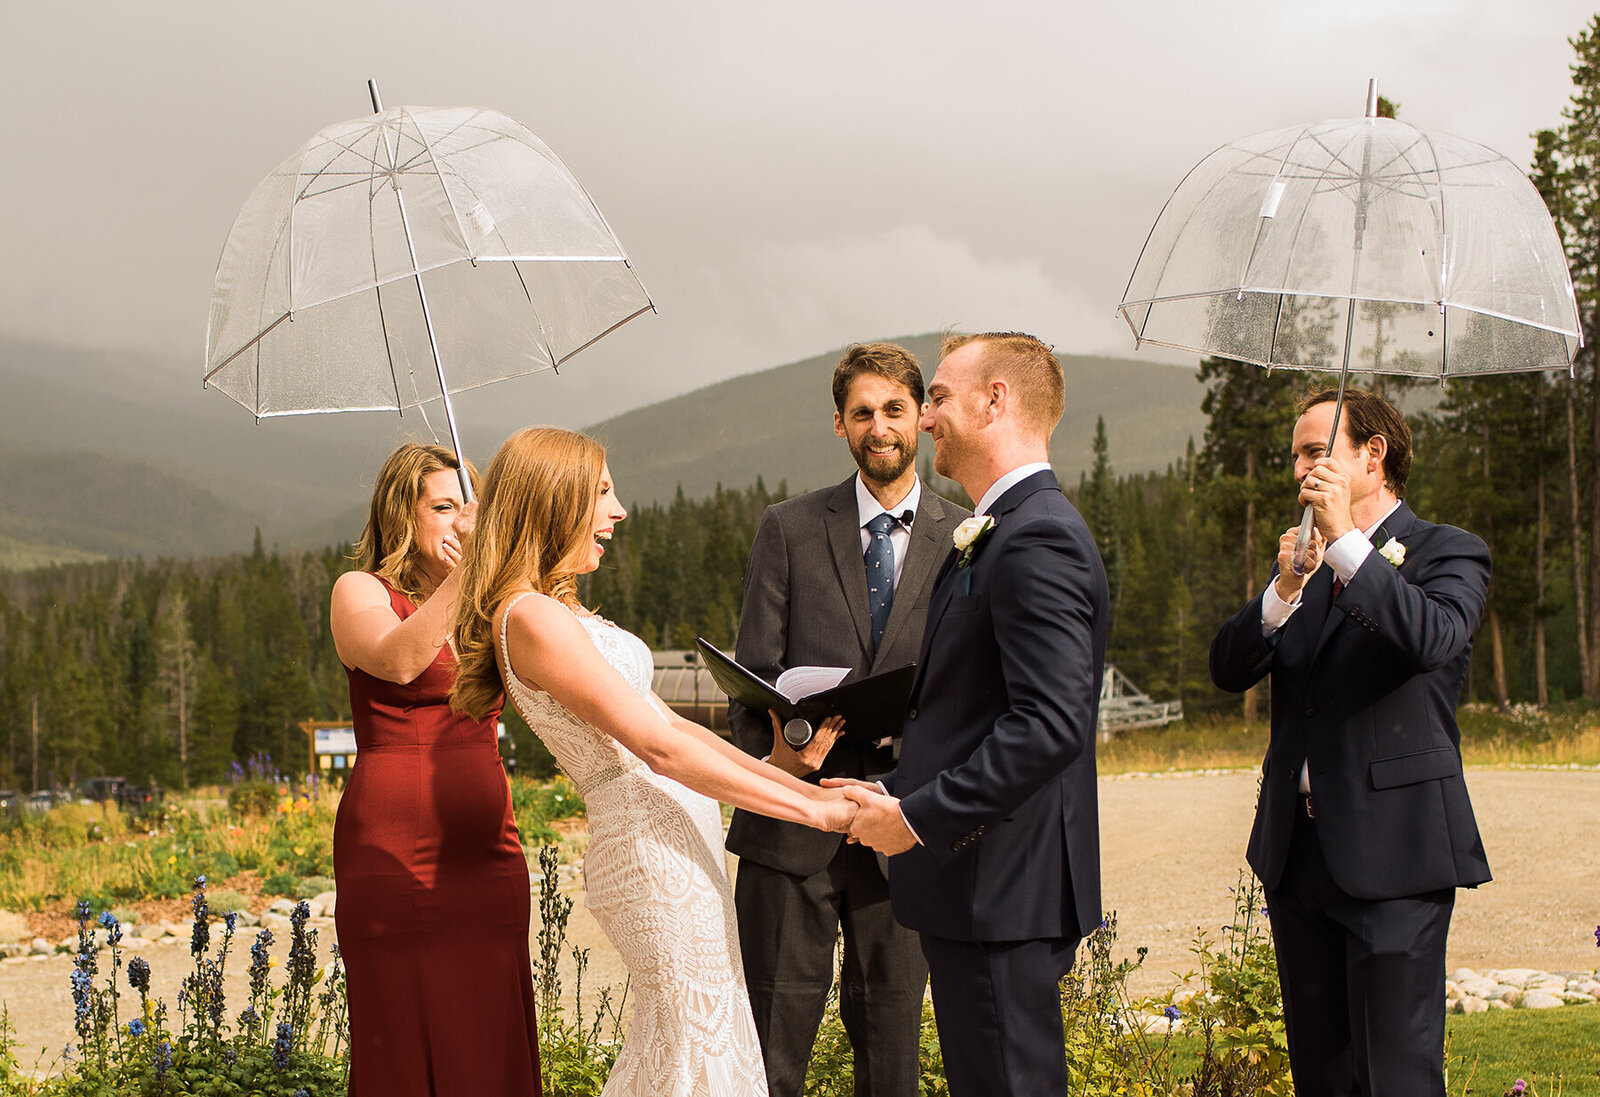 wedding-at-ten-mile-station-breckenridge-colorado-1